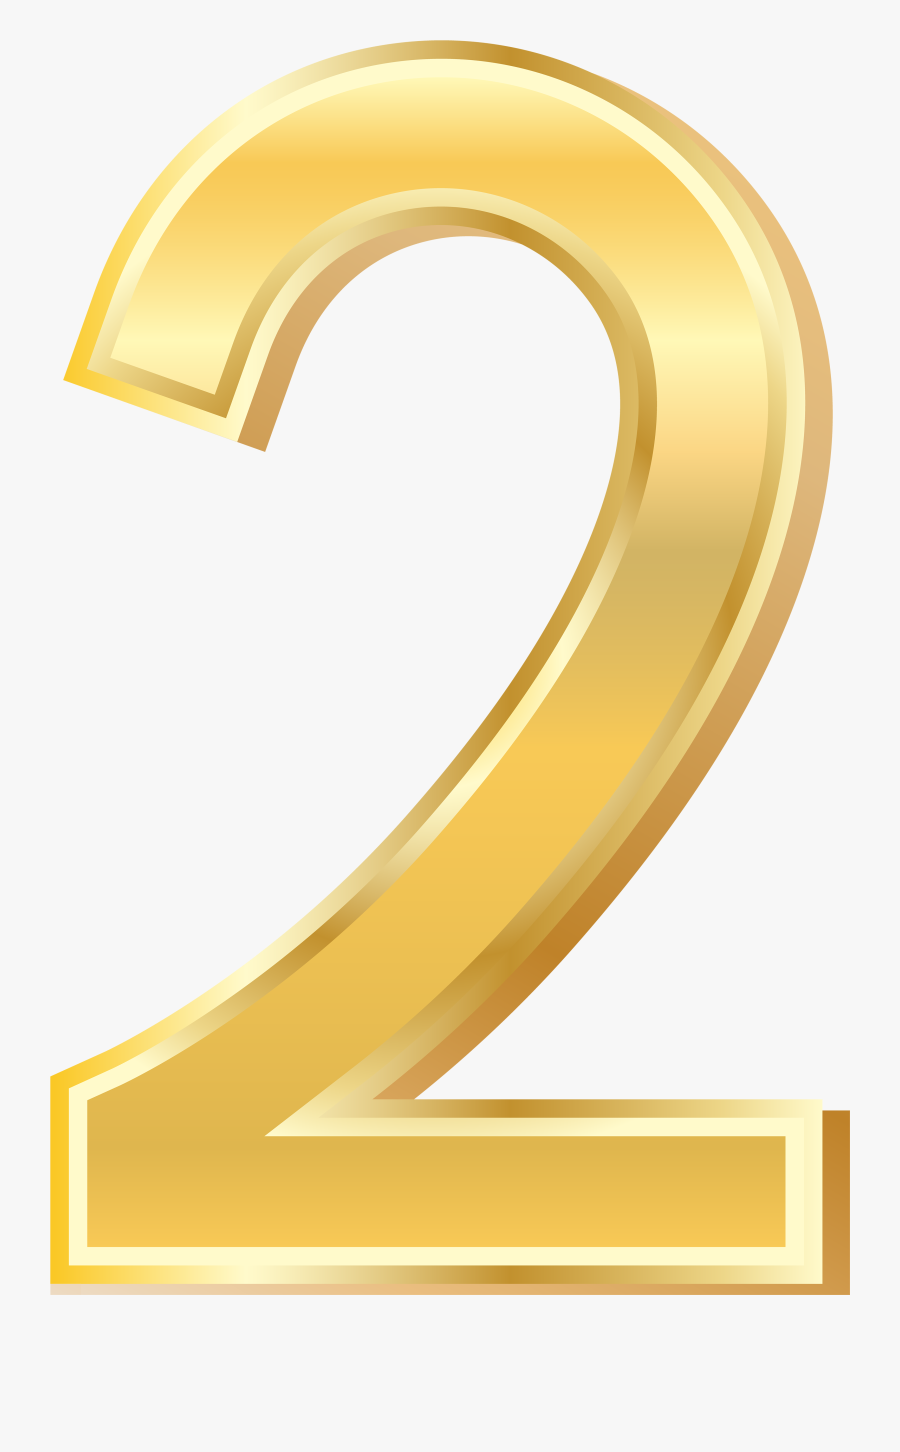 Gold Number Two Png, Transparent Clipart